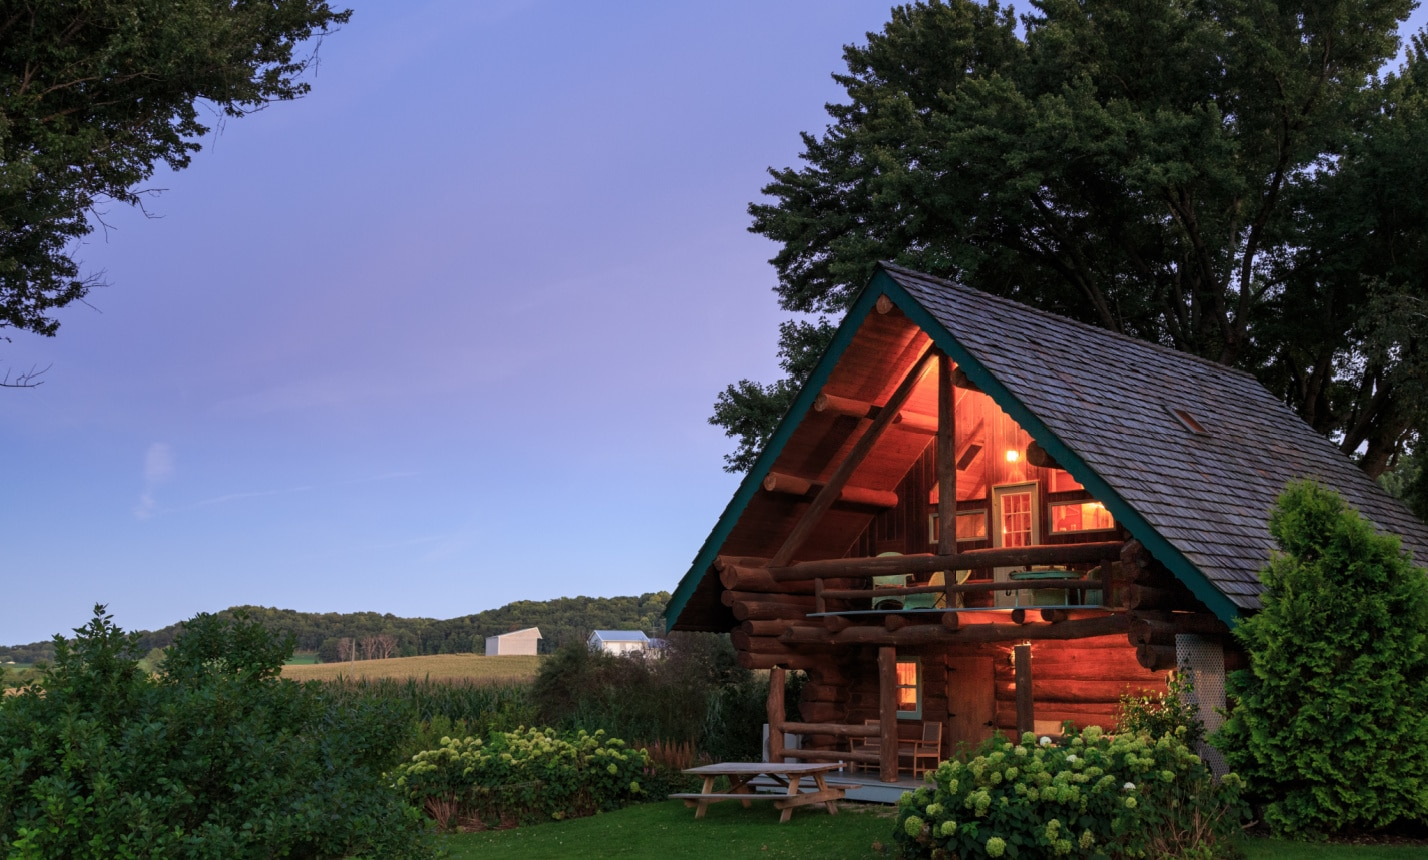 The spacious grounds of our Wisconsin Bed and Breakfast offers cabins in Wisconsin that make for the perfect romantic getaway.